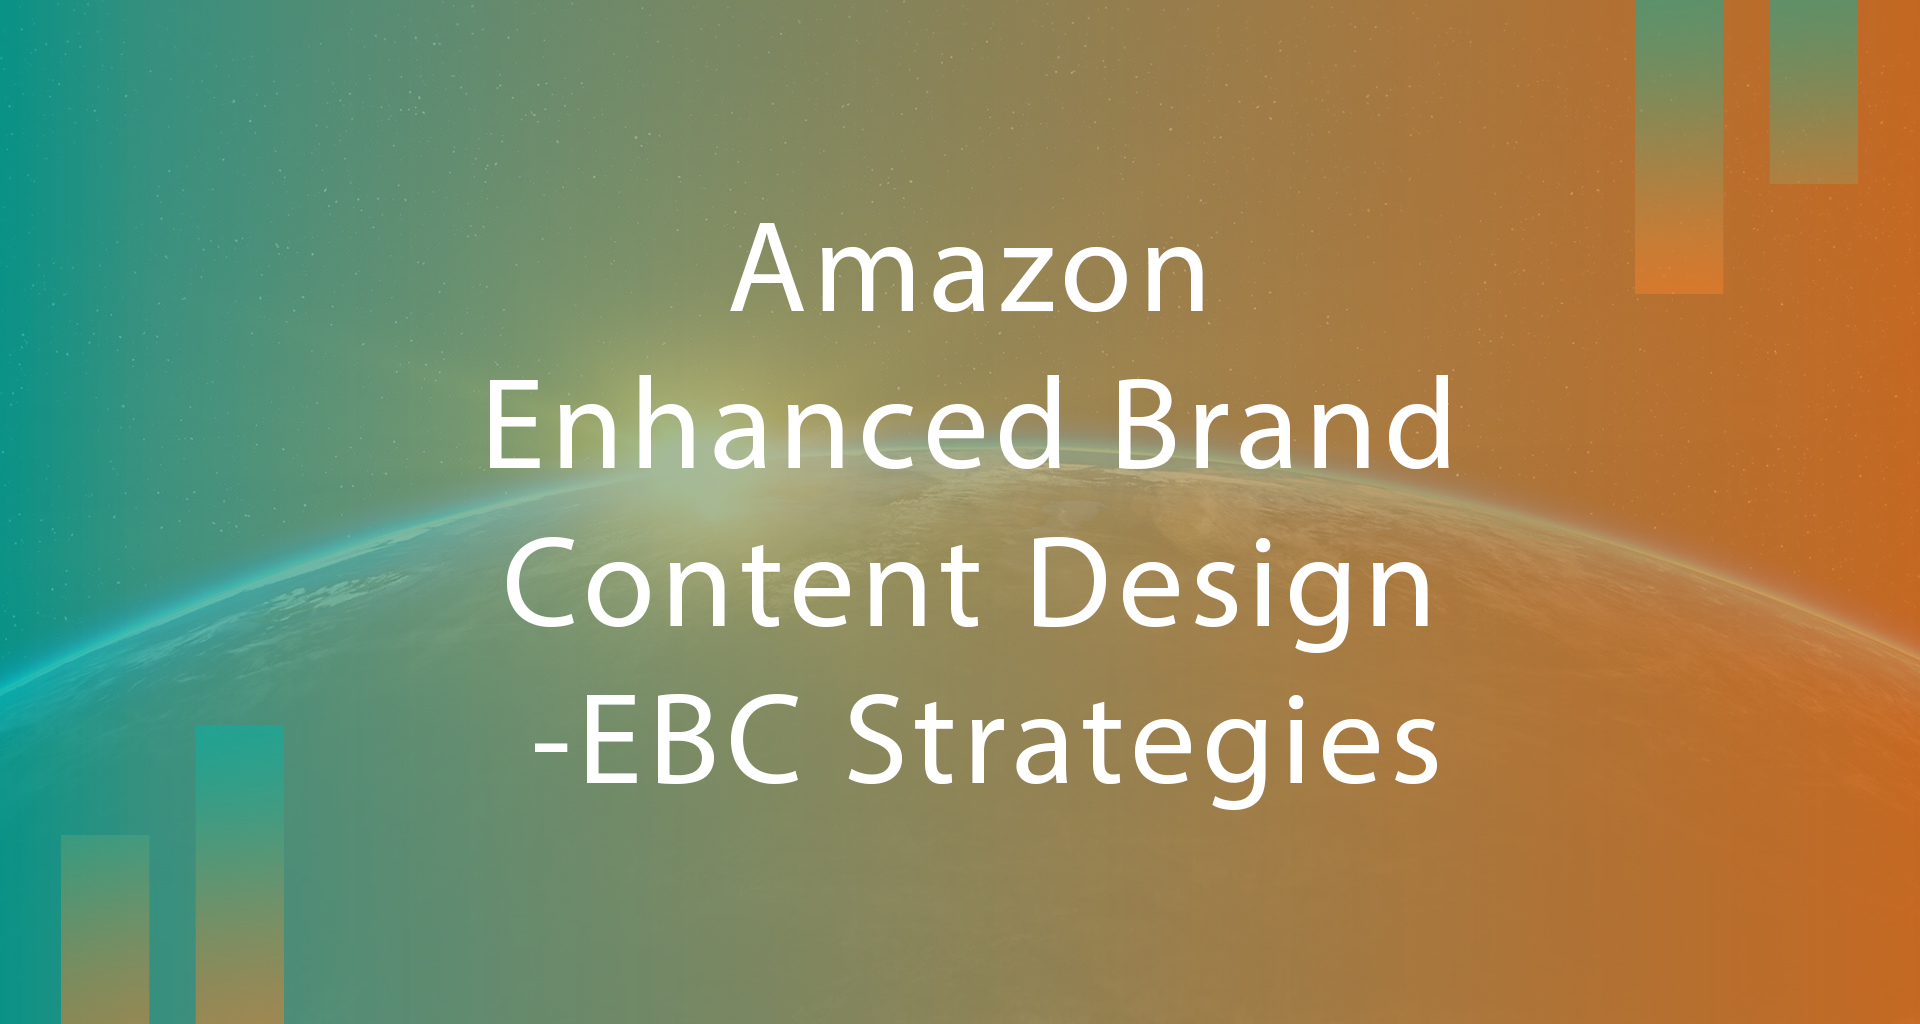 Amazon Enhanced brand content design- EBC strategies